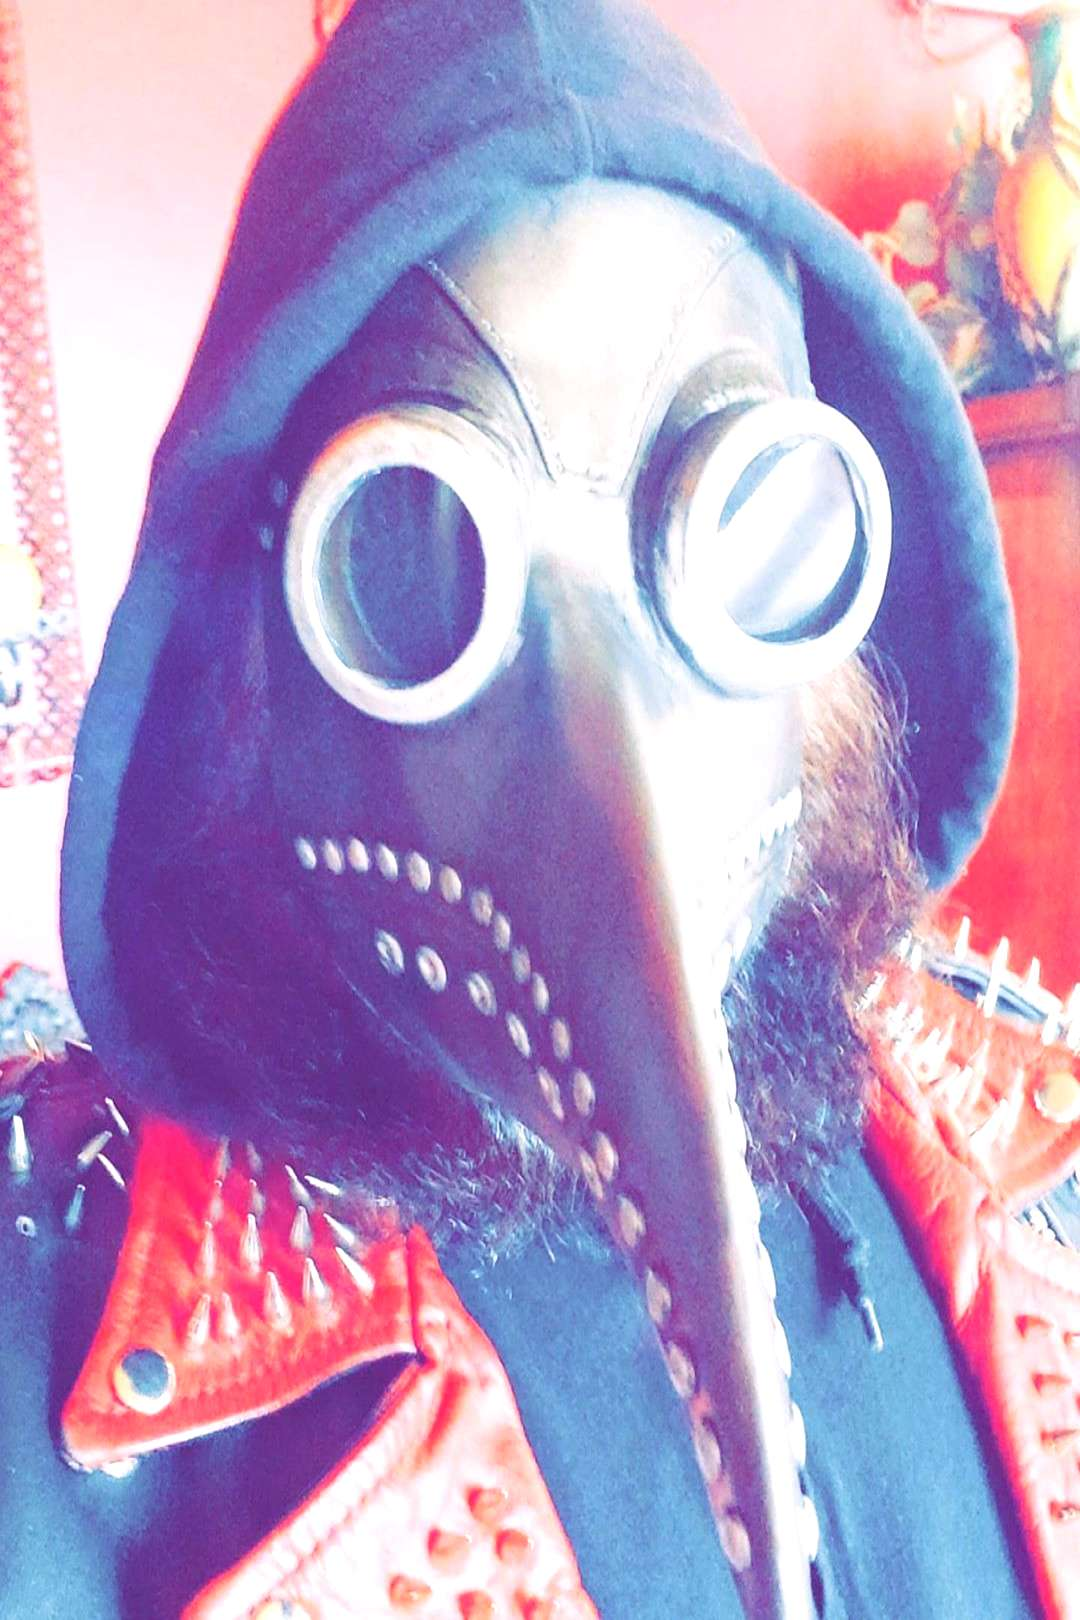 Got my new mask today.